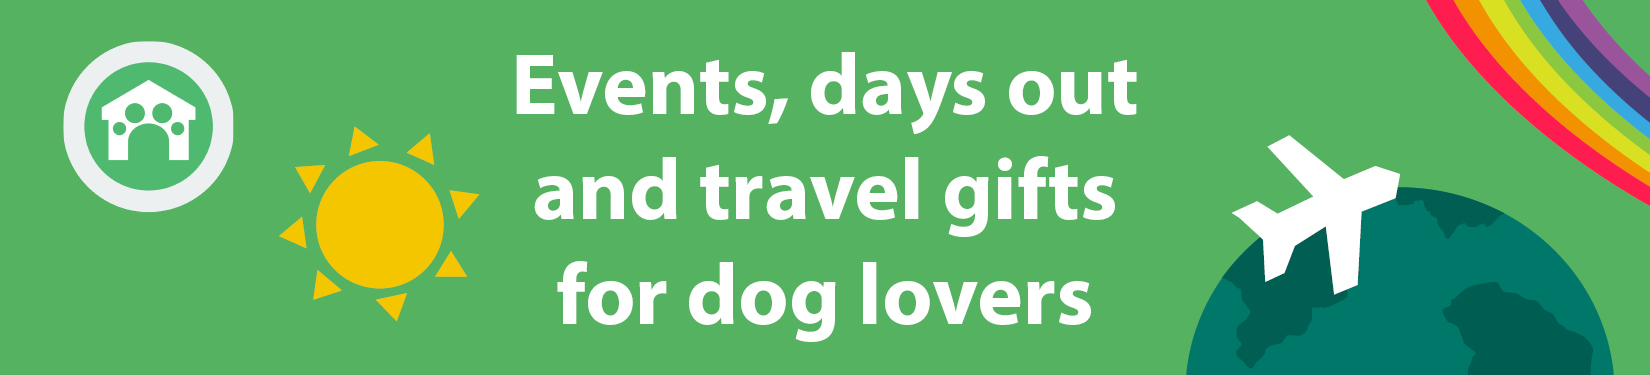 Events, days out and travel gifts for dog lovers header image